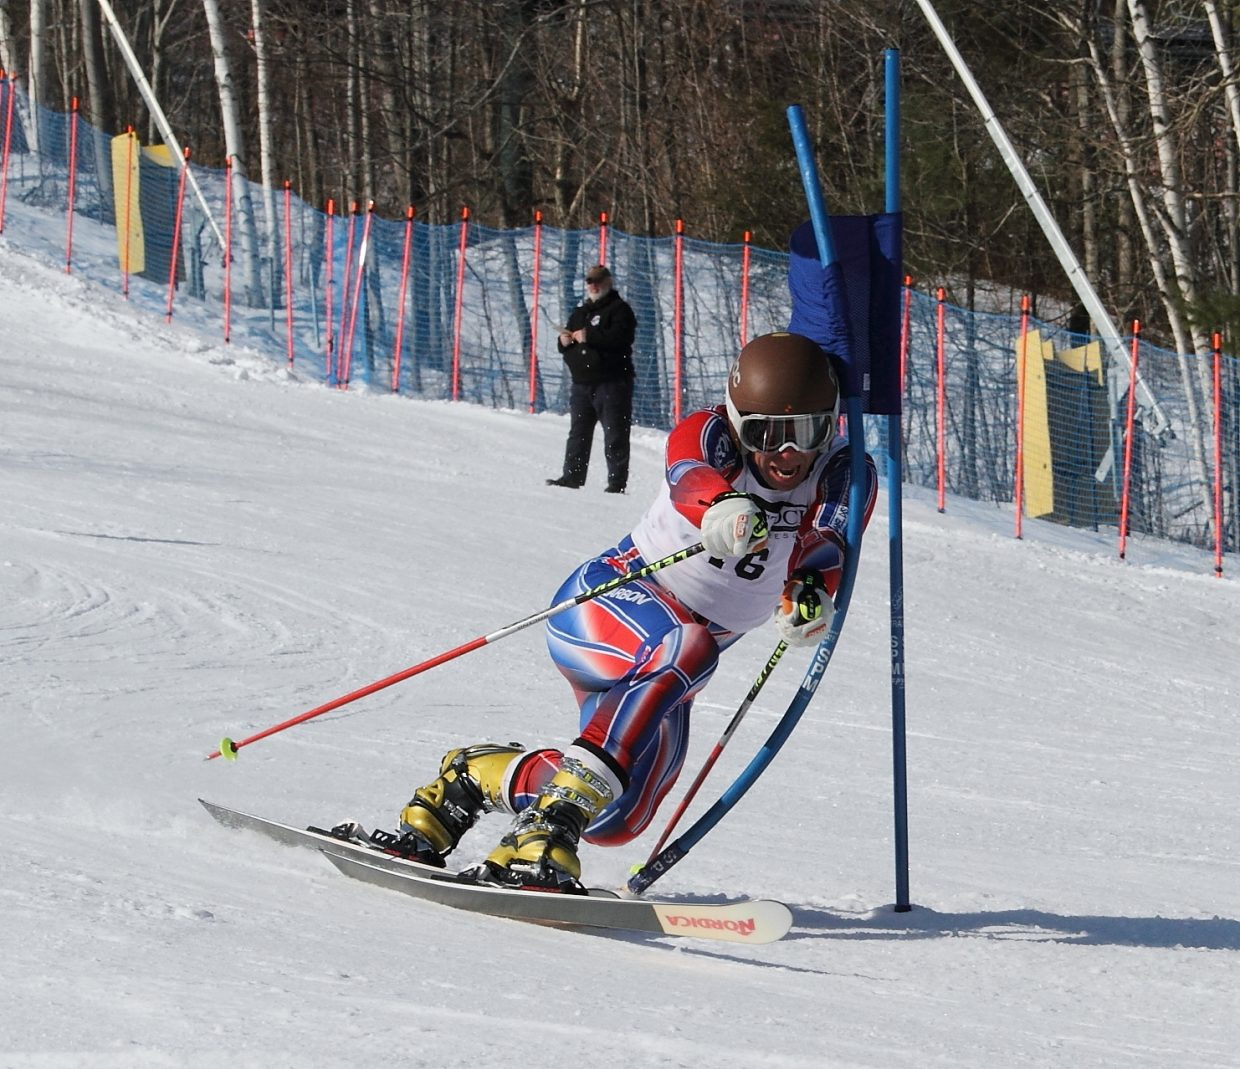 Taylor Dresen Wrap Up Us Telemark National Championships Steamboattoday Com